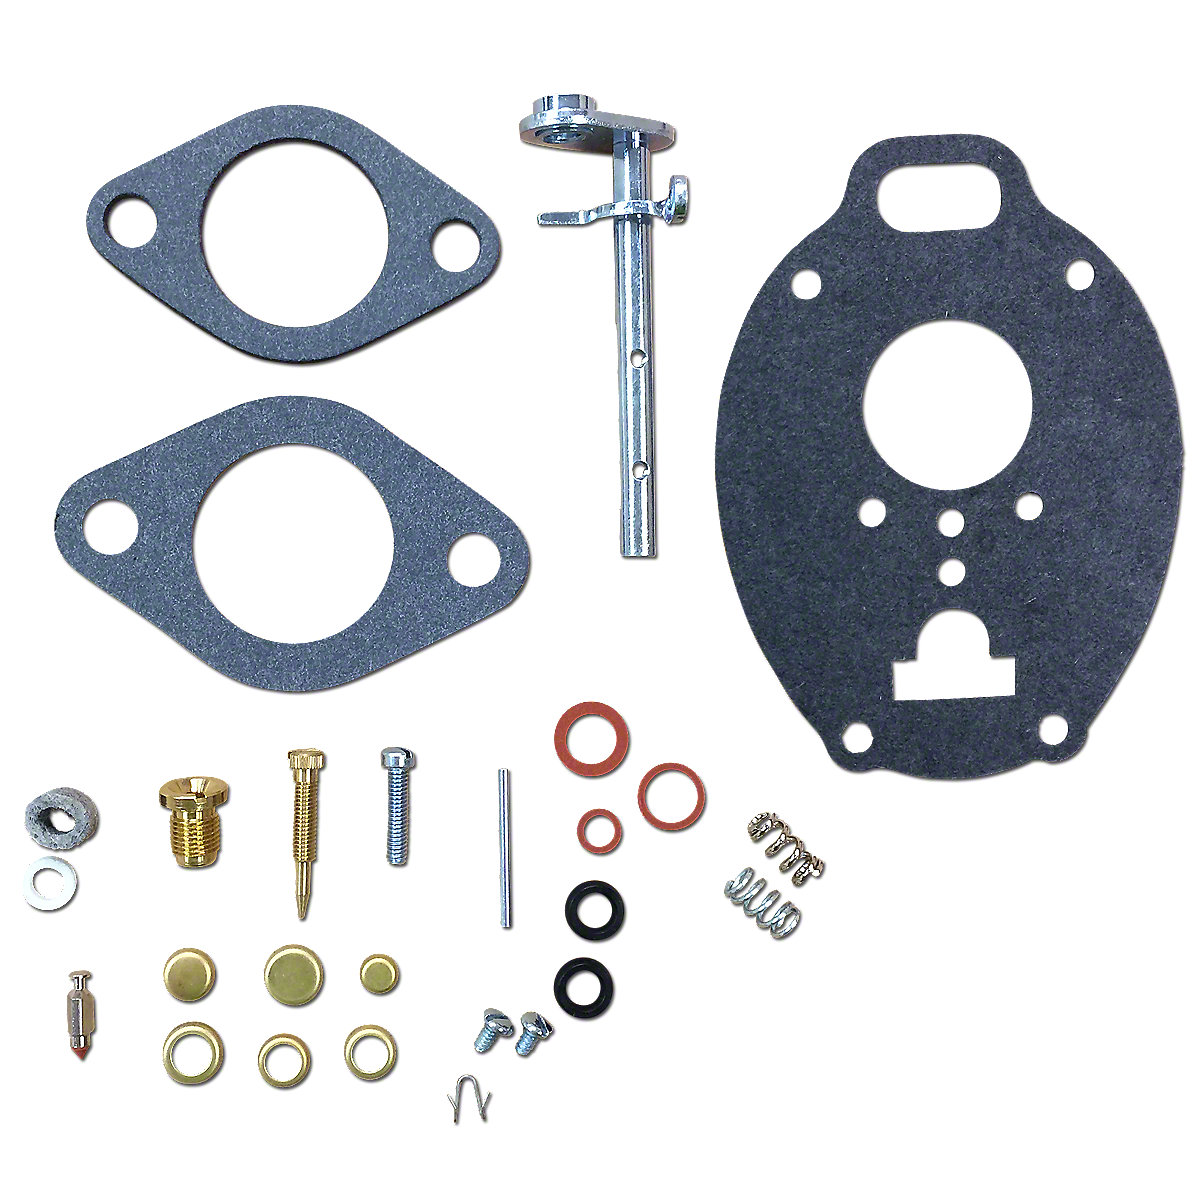 ABC148 Basic Marvel Schebler Carburetor Repair Kit